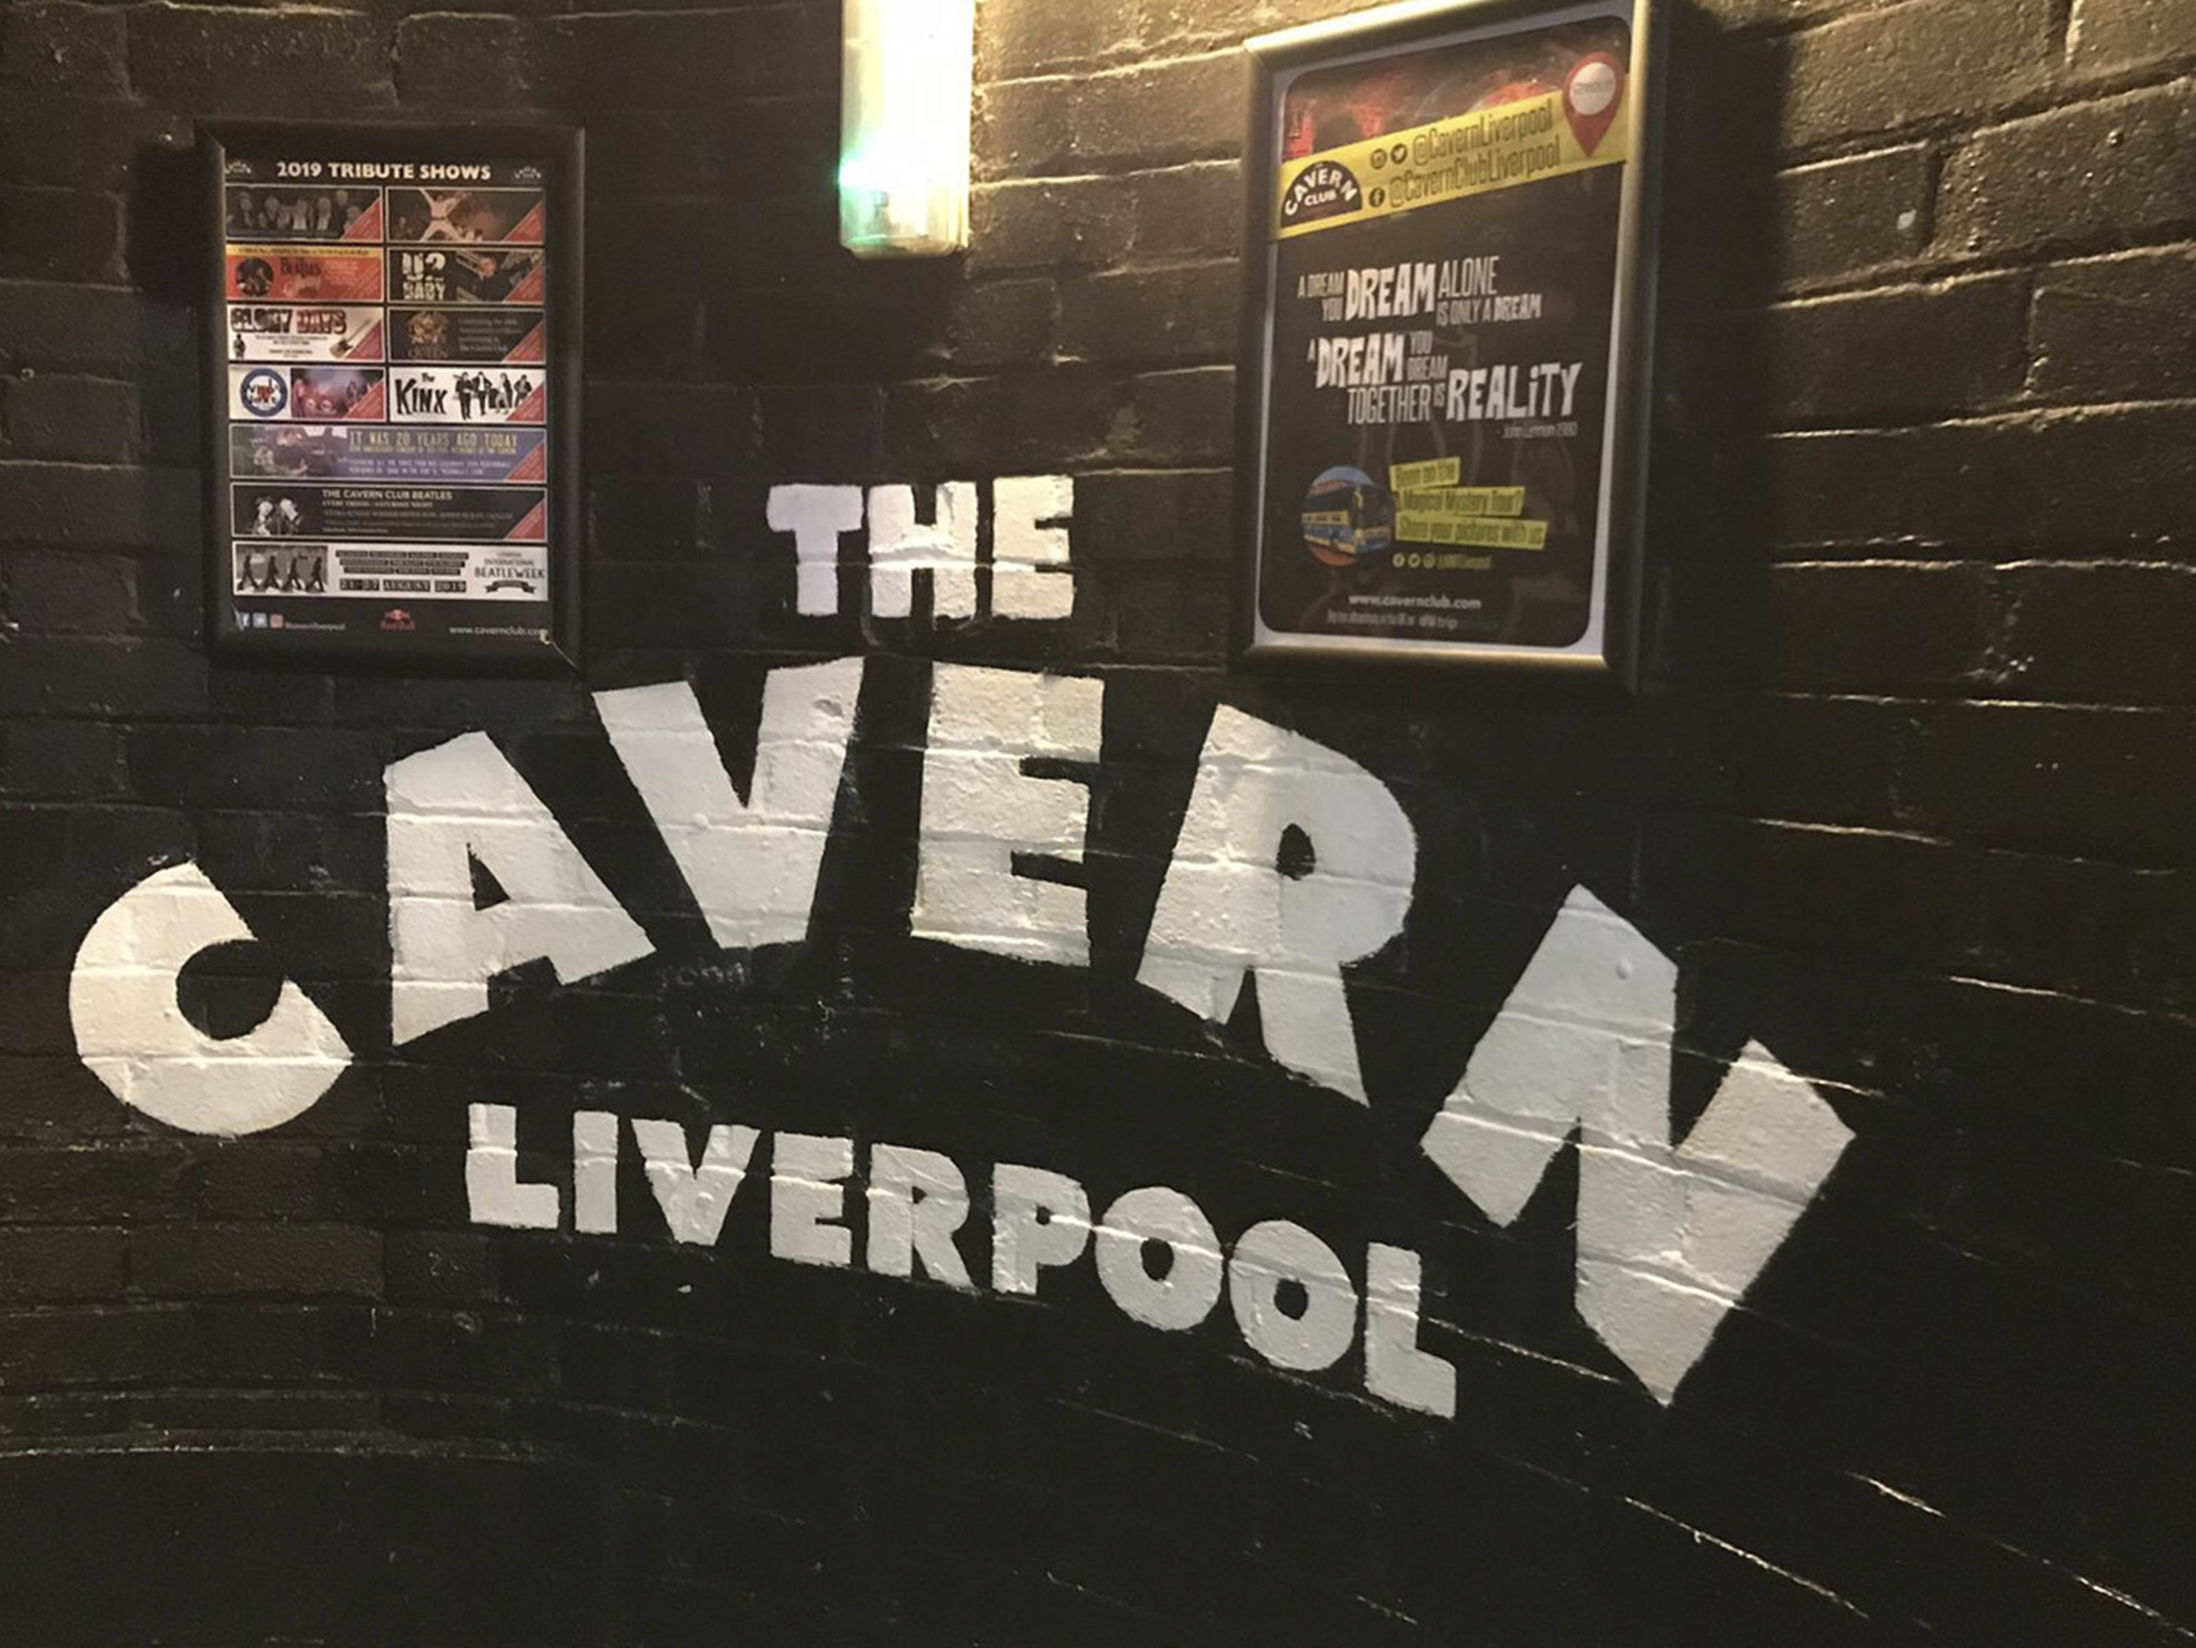 10 Large Christmas Party Venues in Liverpool - The Cavern Club